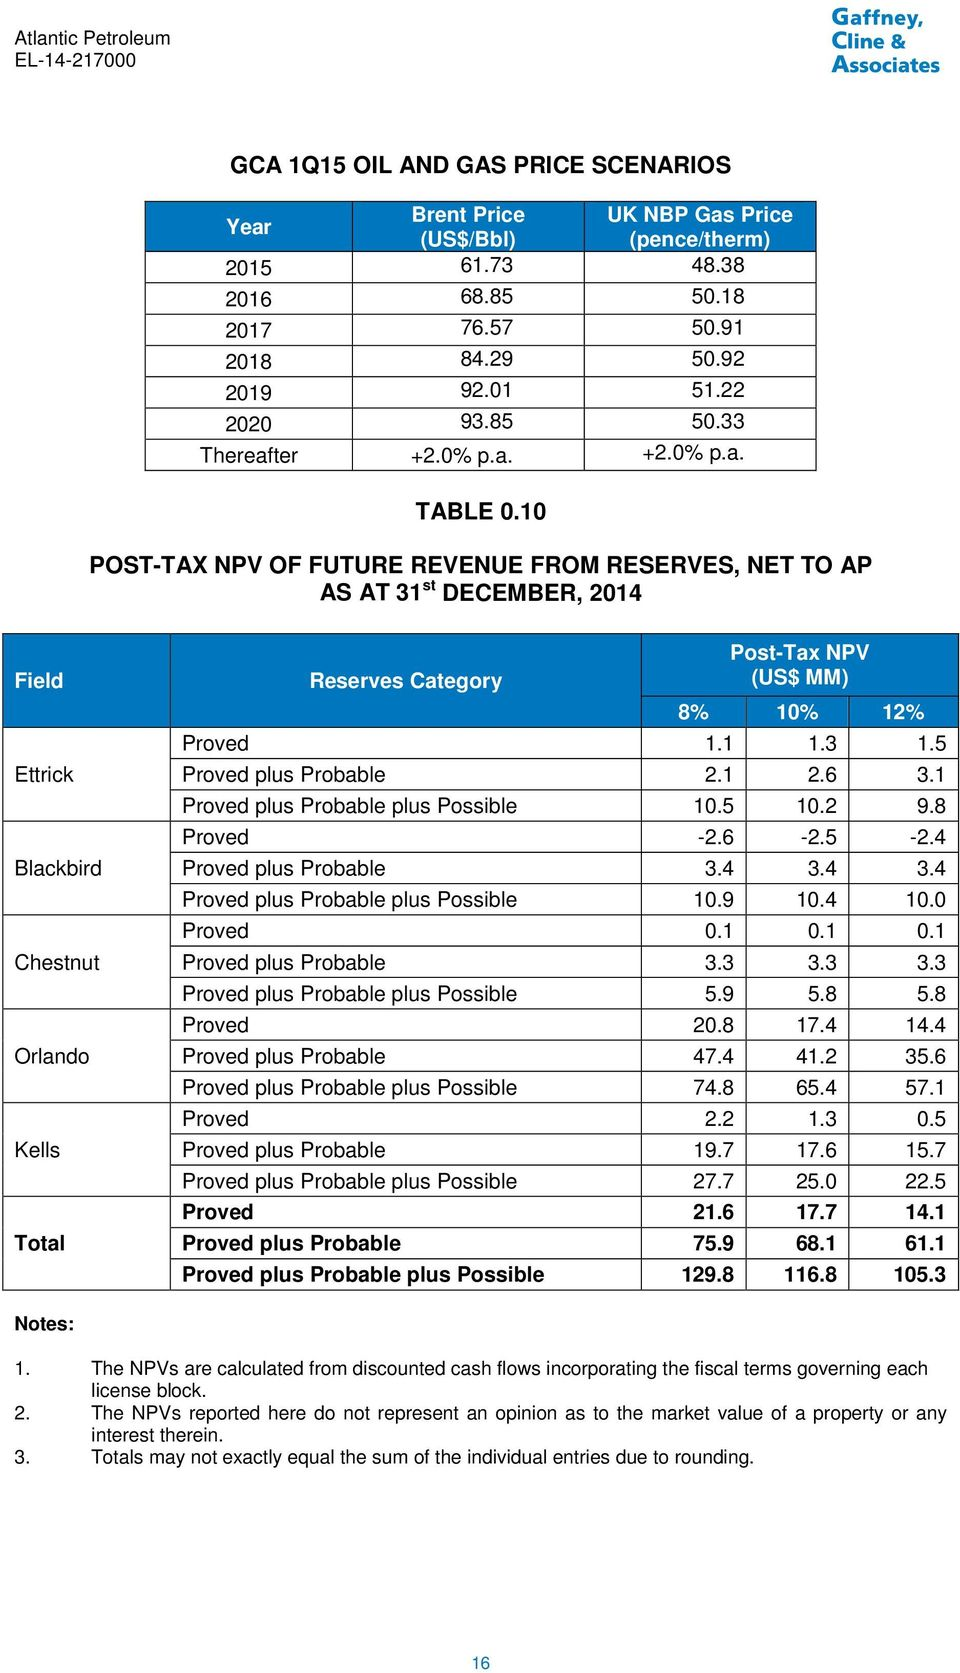 10 POST-TAX NPV OF FUTURE REVENUE FROM RESERVES, NET TO AP AS AT 31 st DECEMBER, 2014 Field Ettrick Blackbird Chestnut Orlando Kells Total Post-Tax NPV Reserves Category (US$ MM) 8% 10% 12% Proved 1.